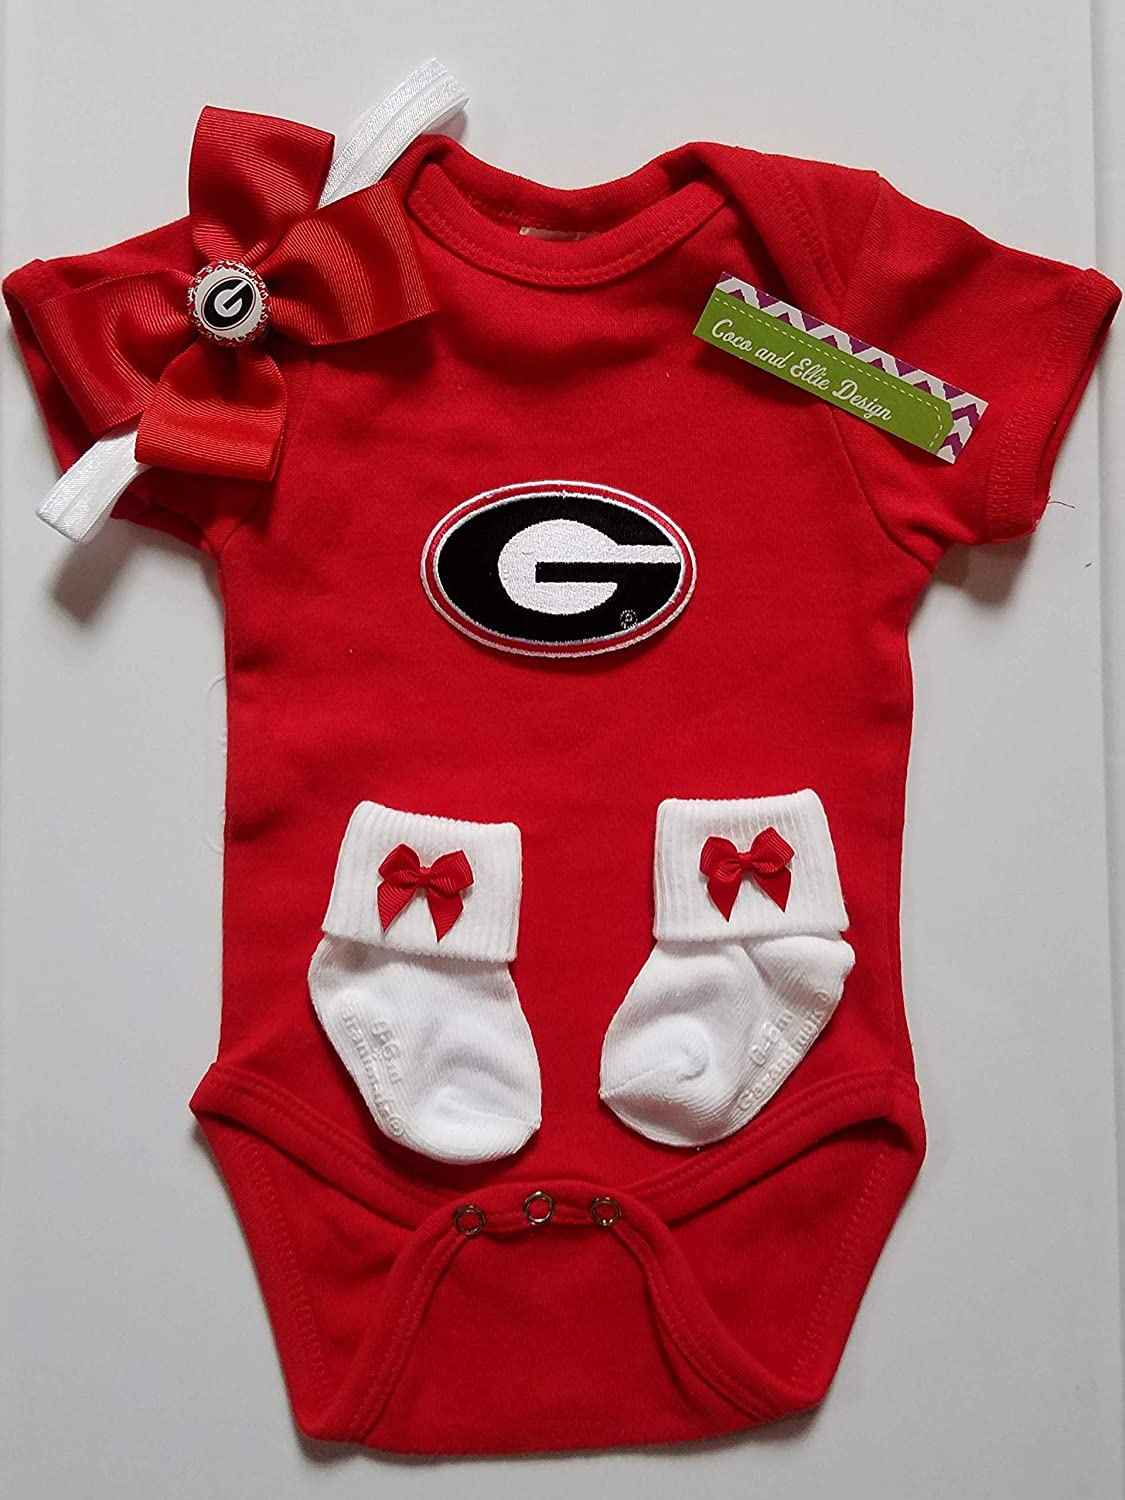 quality design 09f6f 3f26d Amazon.com: Georgia Bulldogs baby clothes/Georgia baby ...